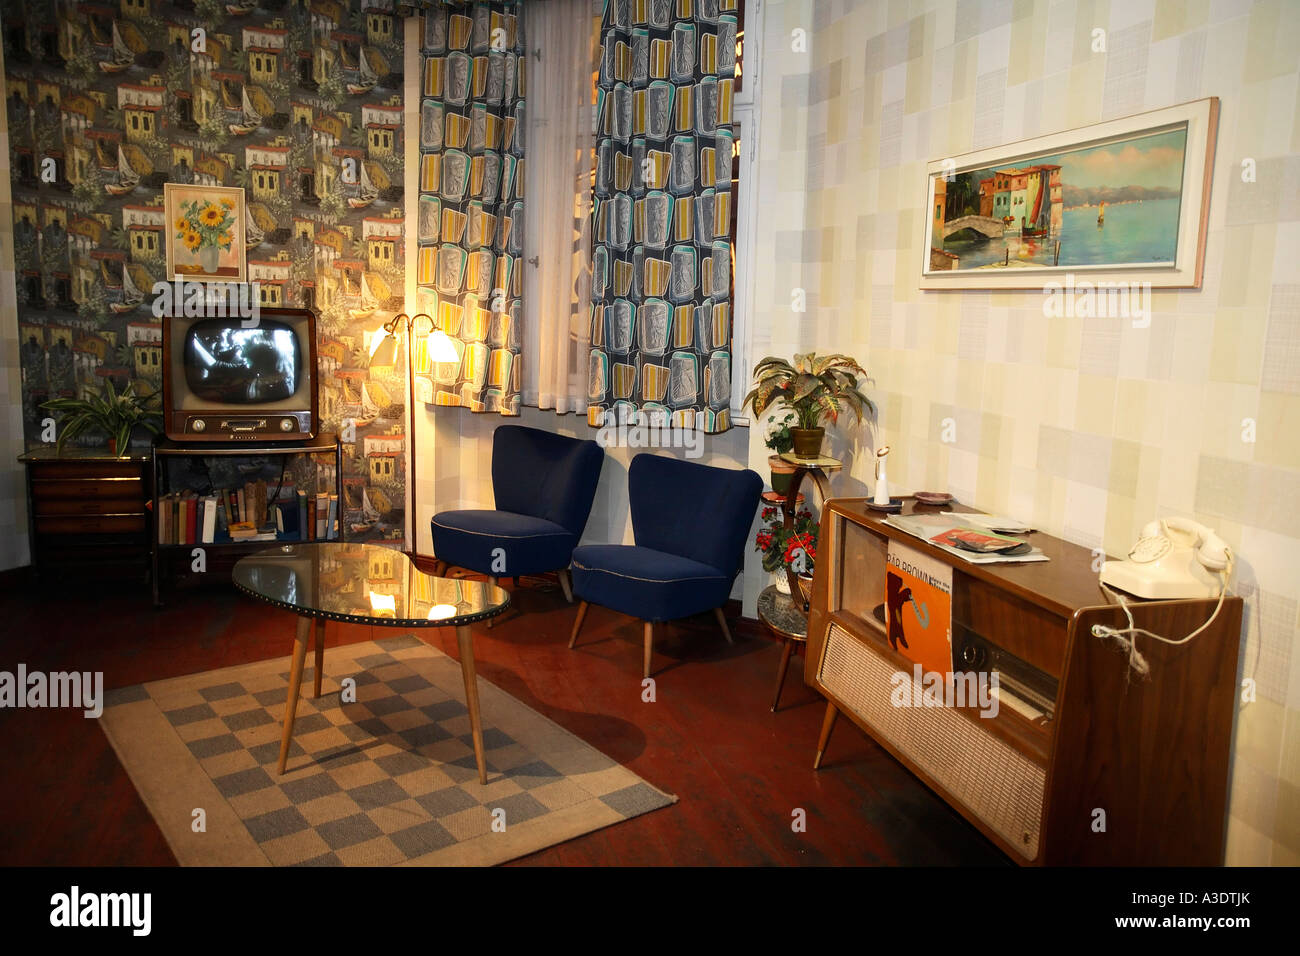 Reproduction Of A Typical West German Living Room From The